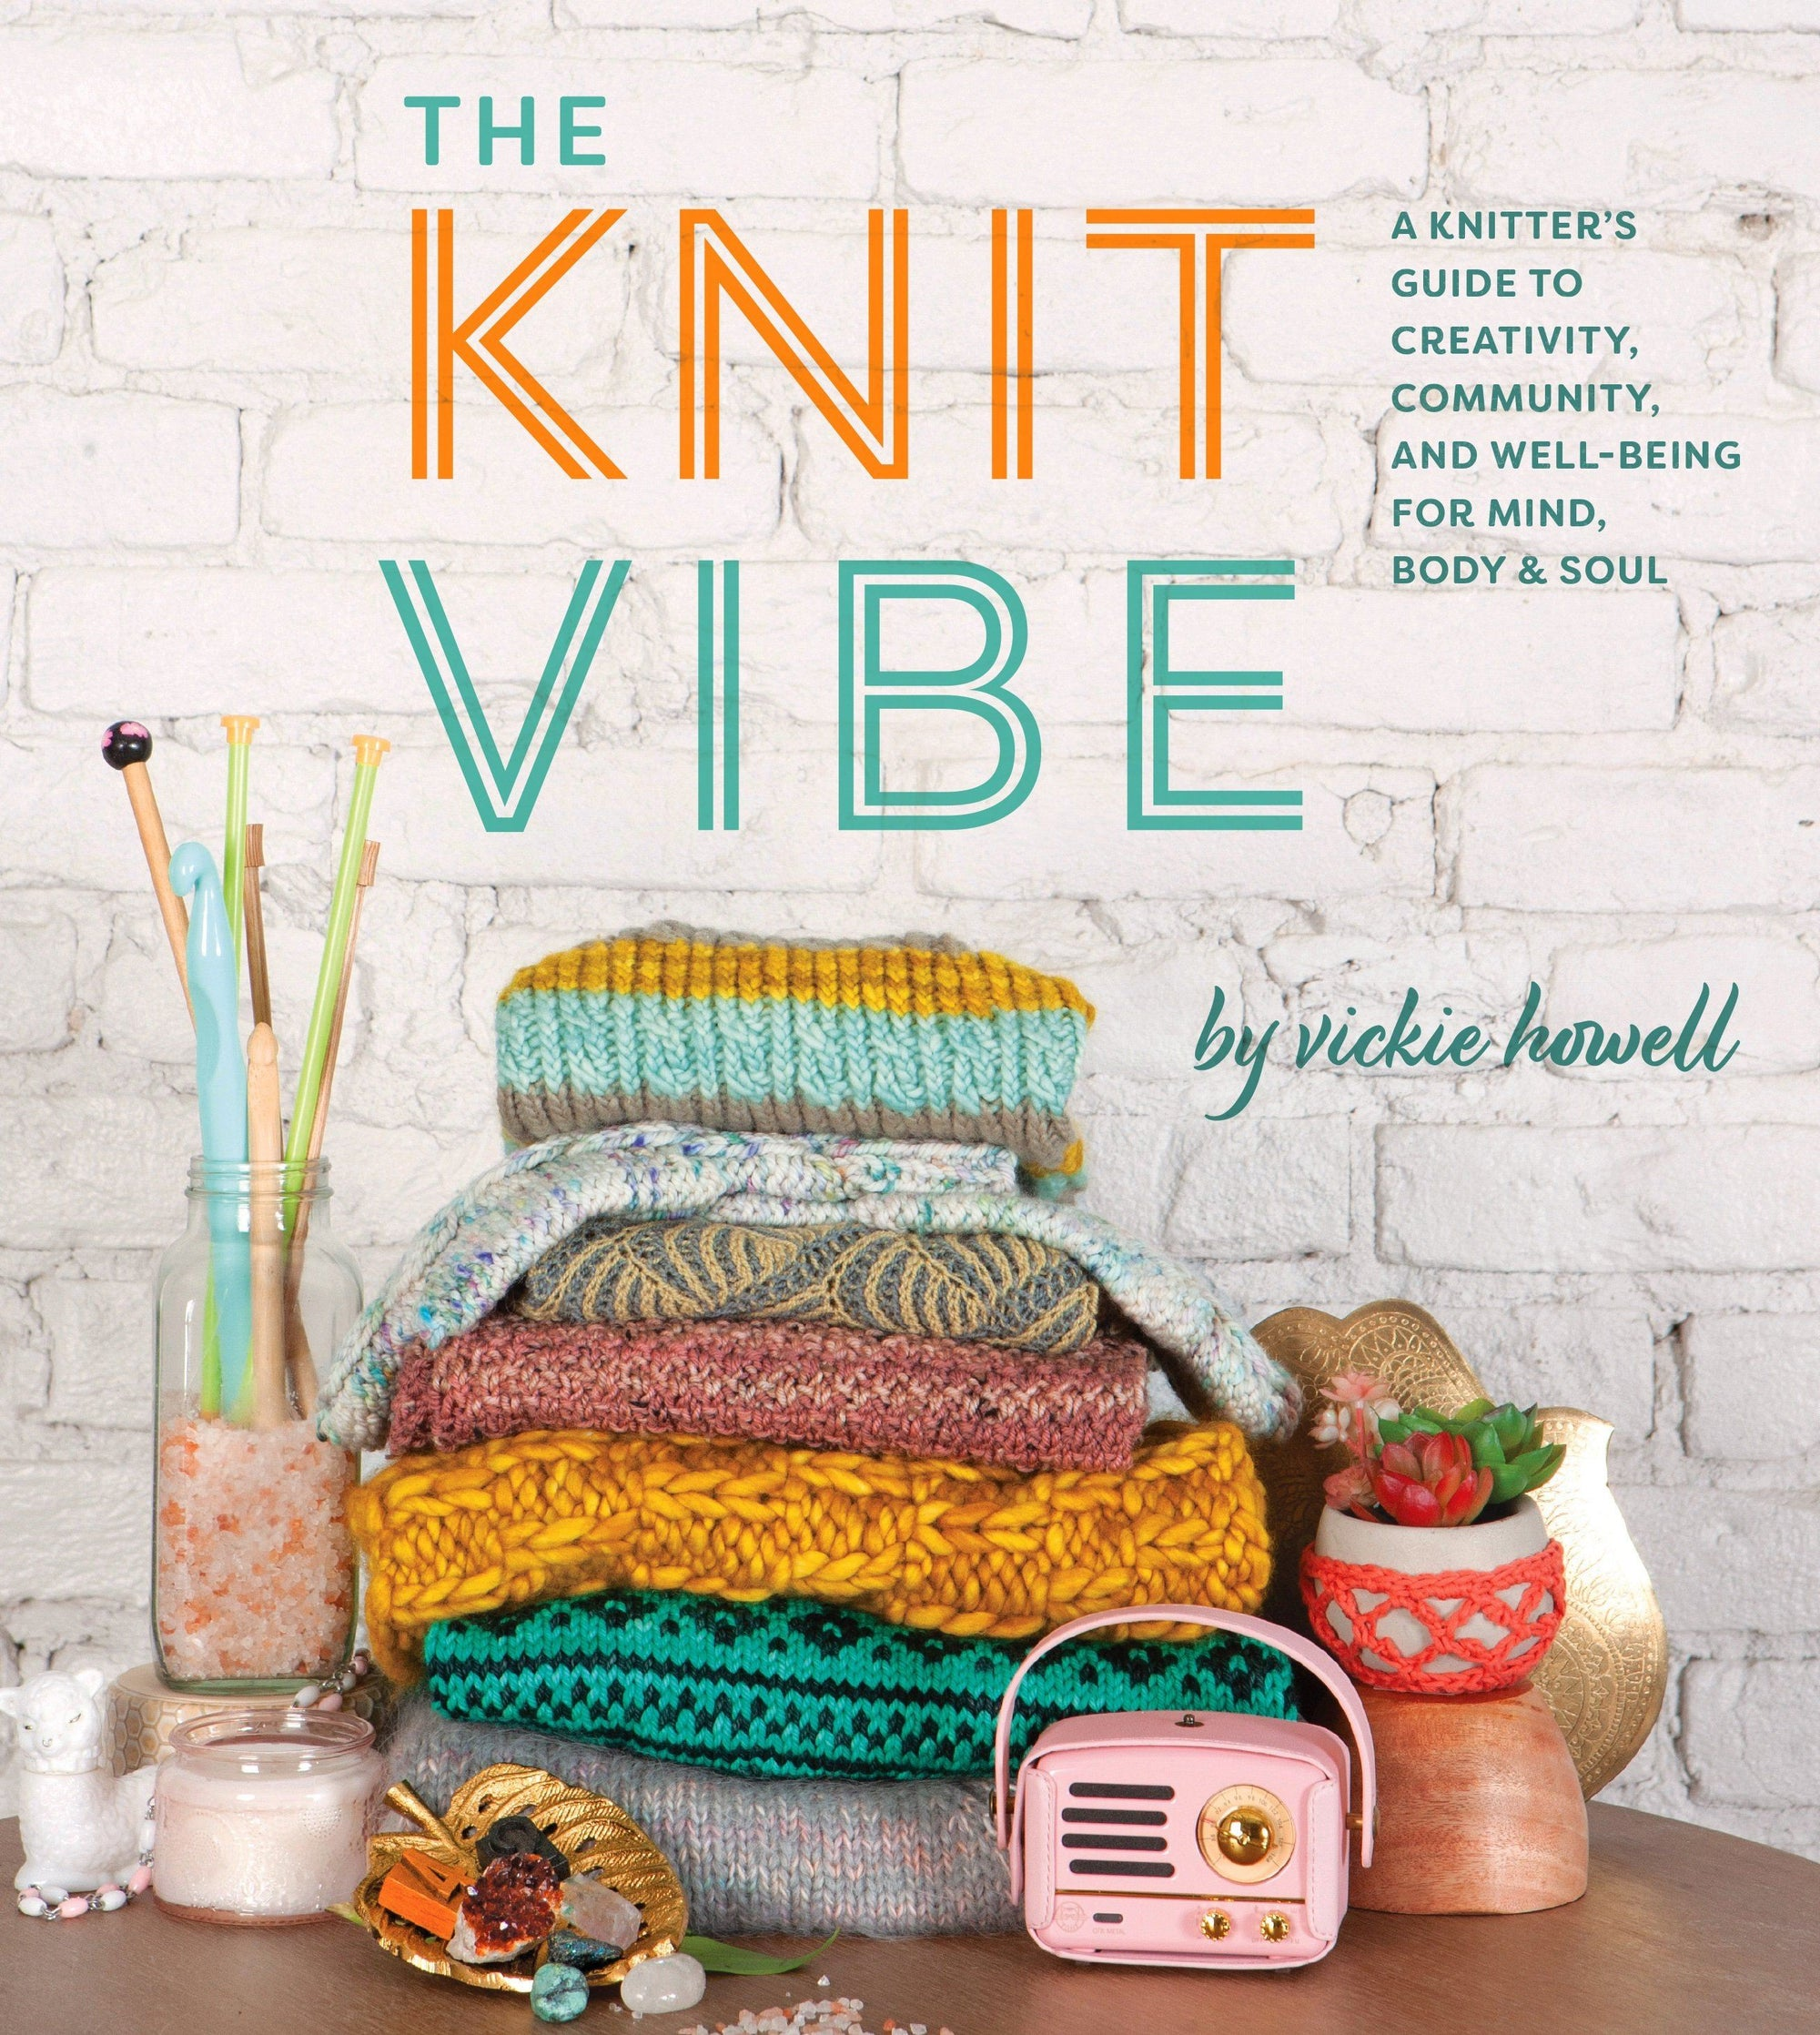 The Knit Vibe Book - BouChic